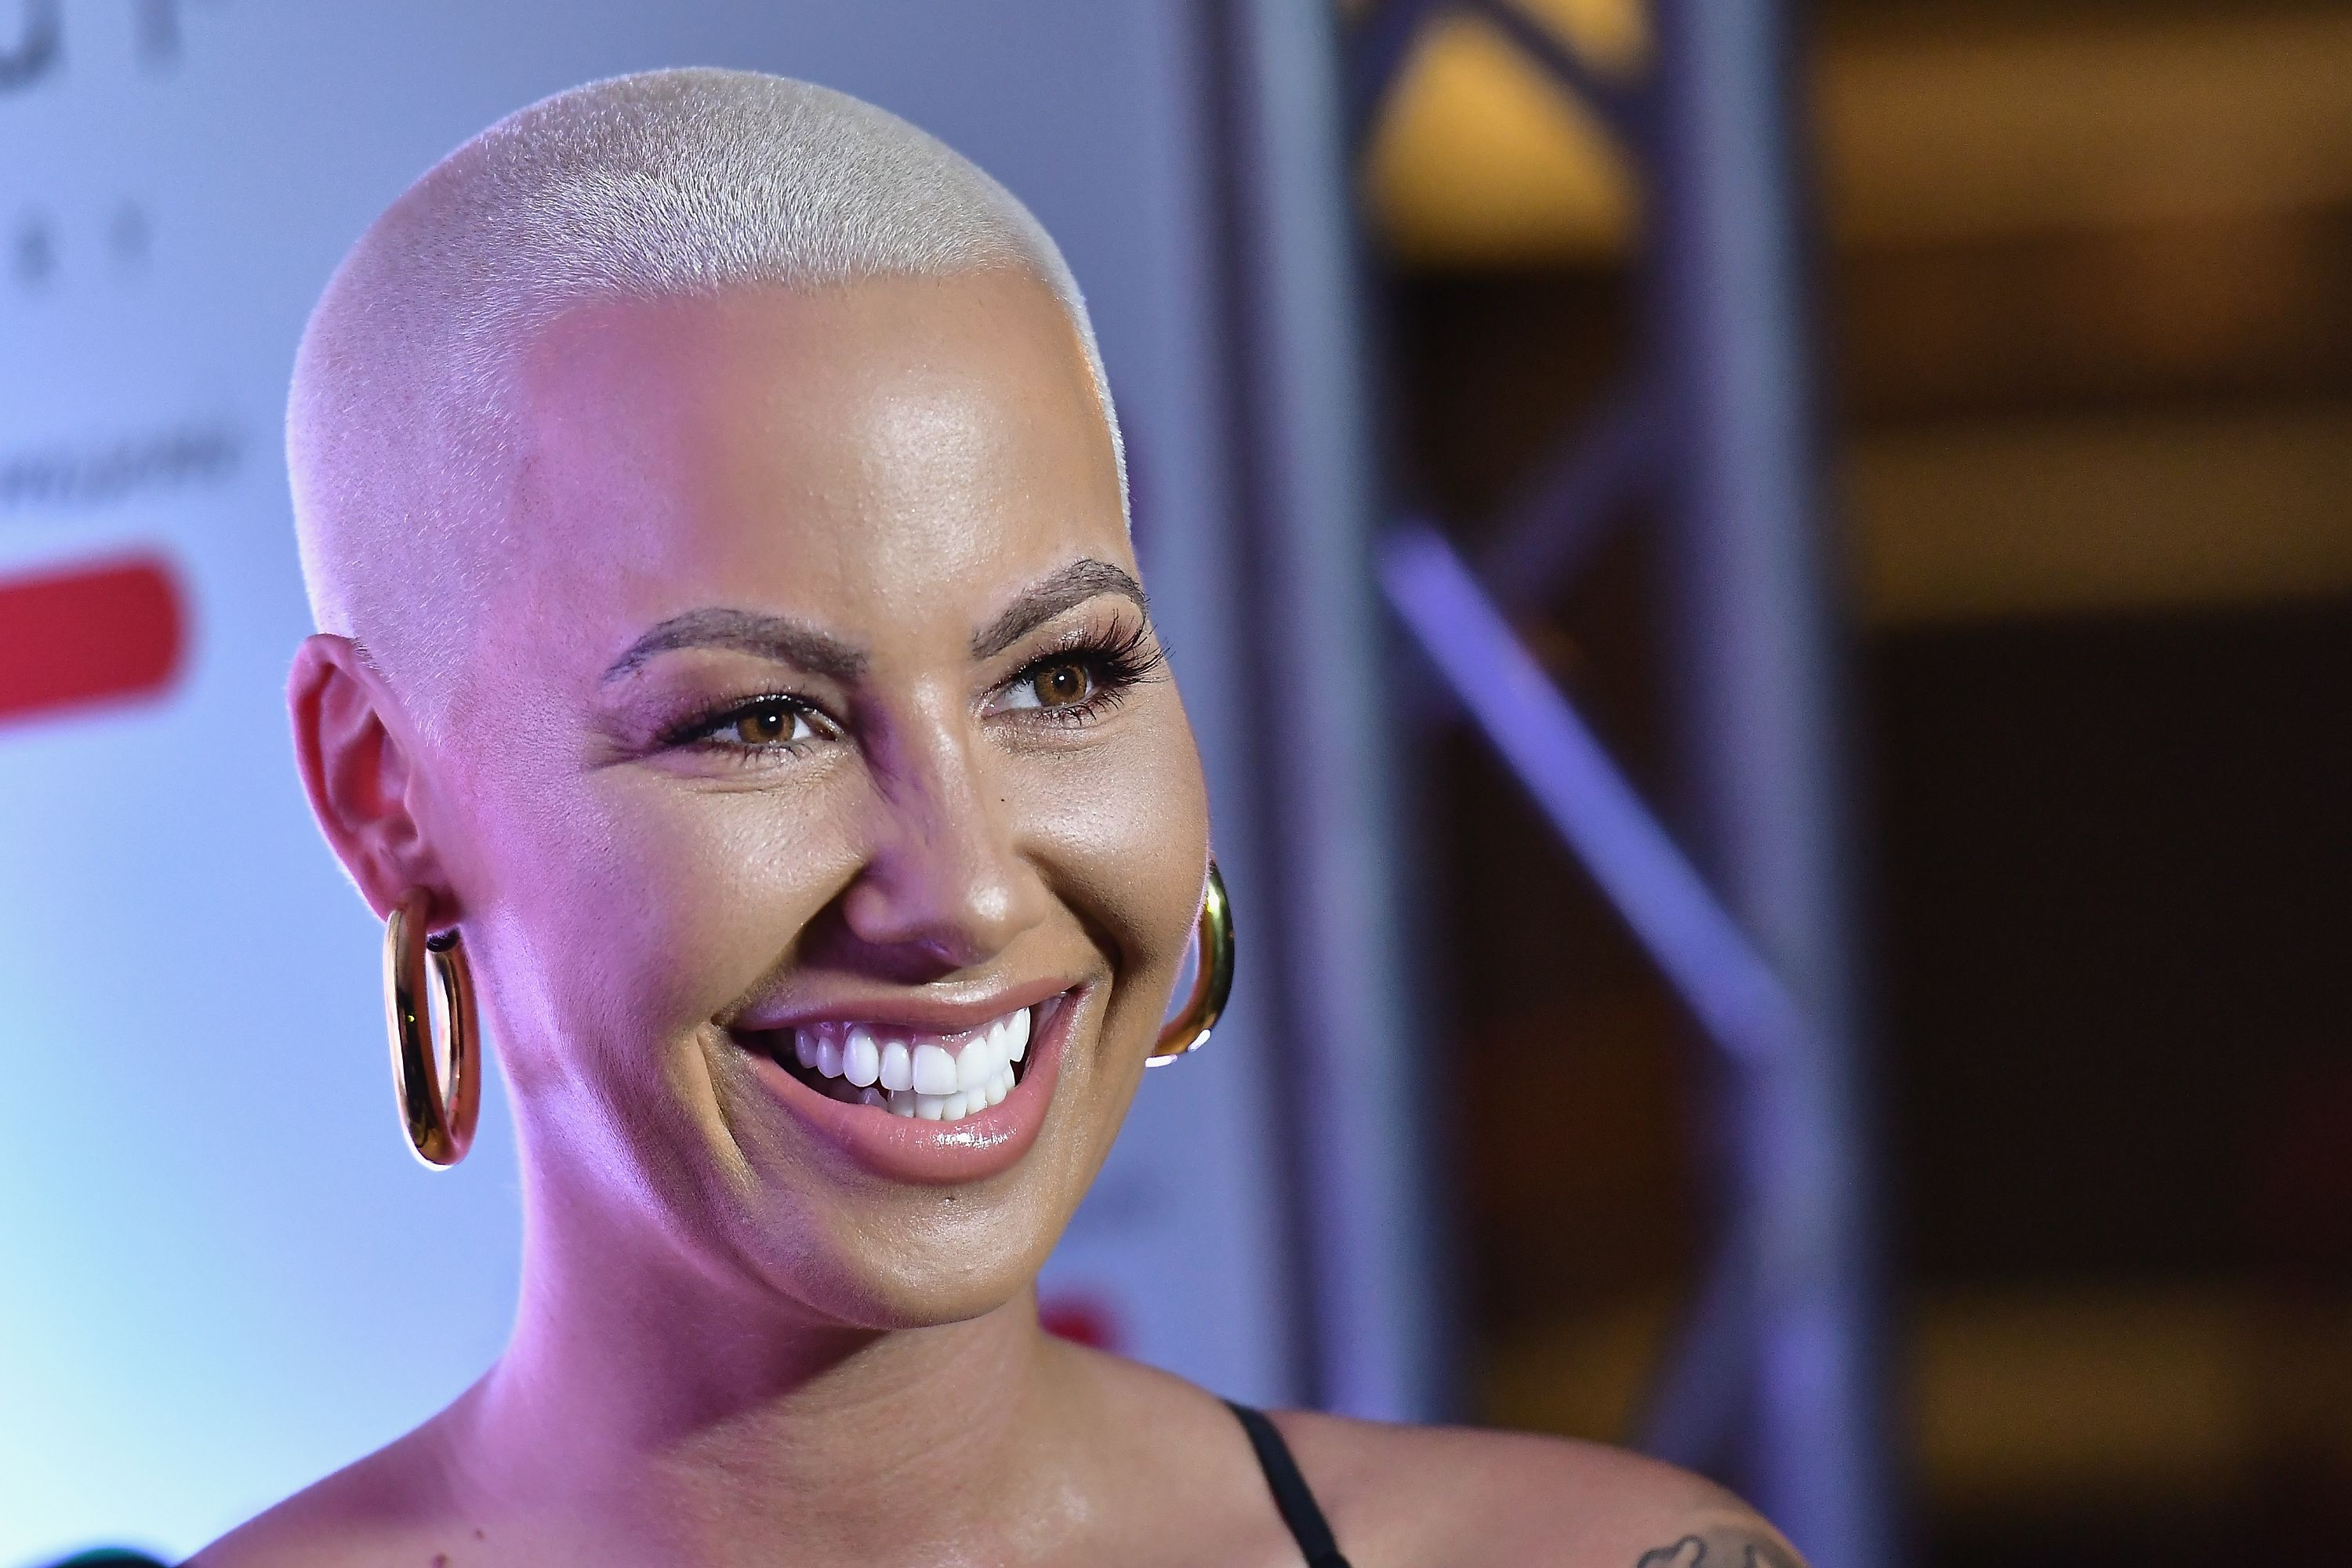 Amber Rose attends the end of summer party at Sugar Factory American Brasserie on August 18, 2017 in Miami, Florida. | Source: Getty Images